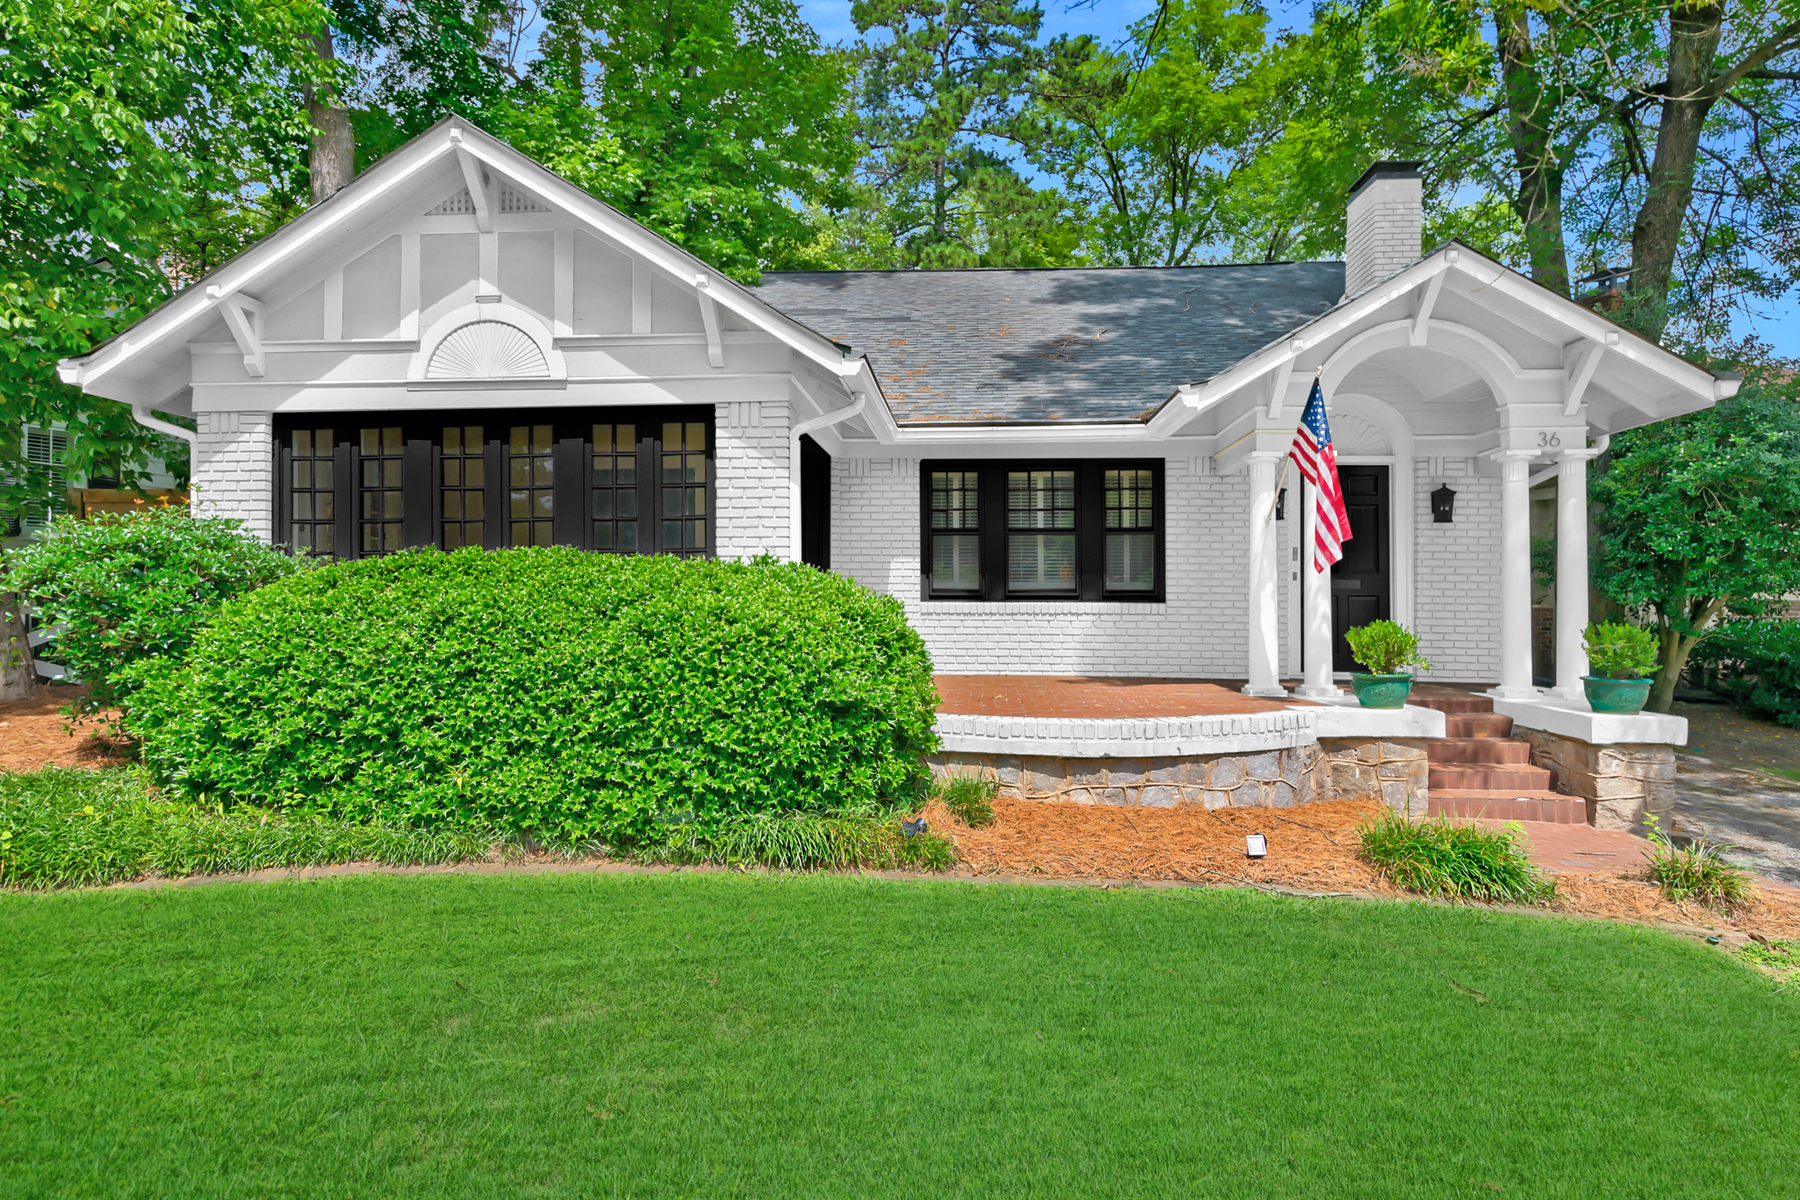 Single Family Homes için Satış at Located Directly Across The Street From Ansley Golf Course 36 Polo Drive NE Atlanta, Georgia 30309 Amerika Birleşik Devletleri